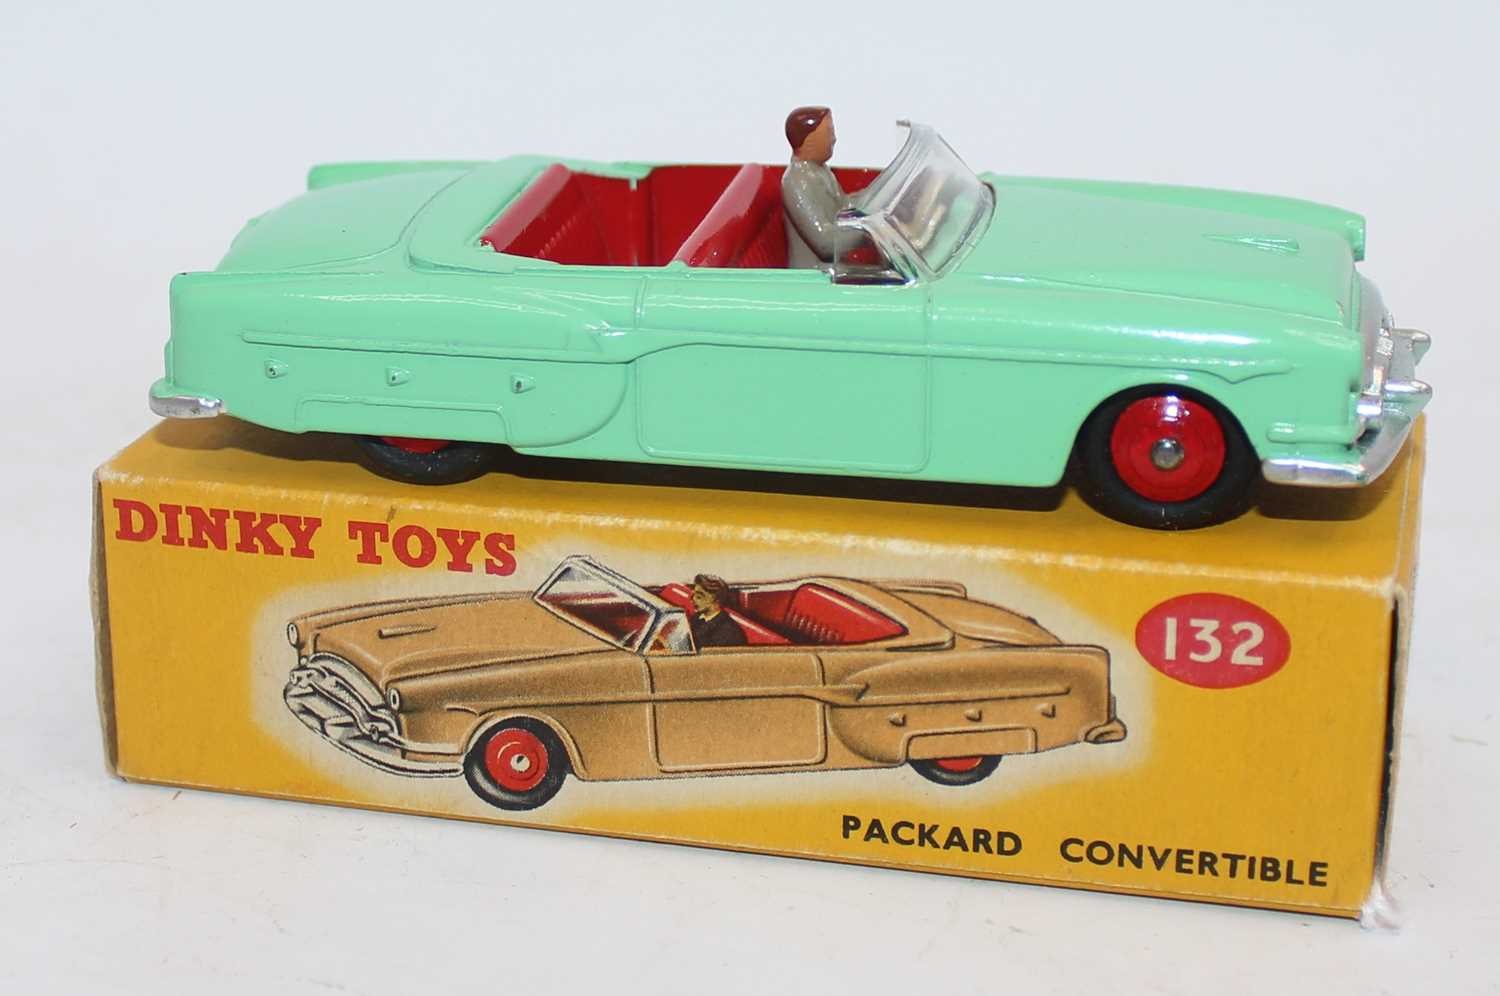 Dinky Toys 132 Packard Convertible with green body, red interior and hubs and driver comes with - Image 2 of 2